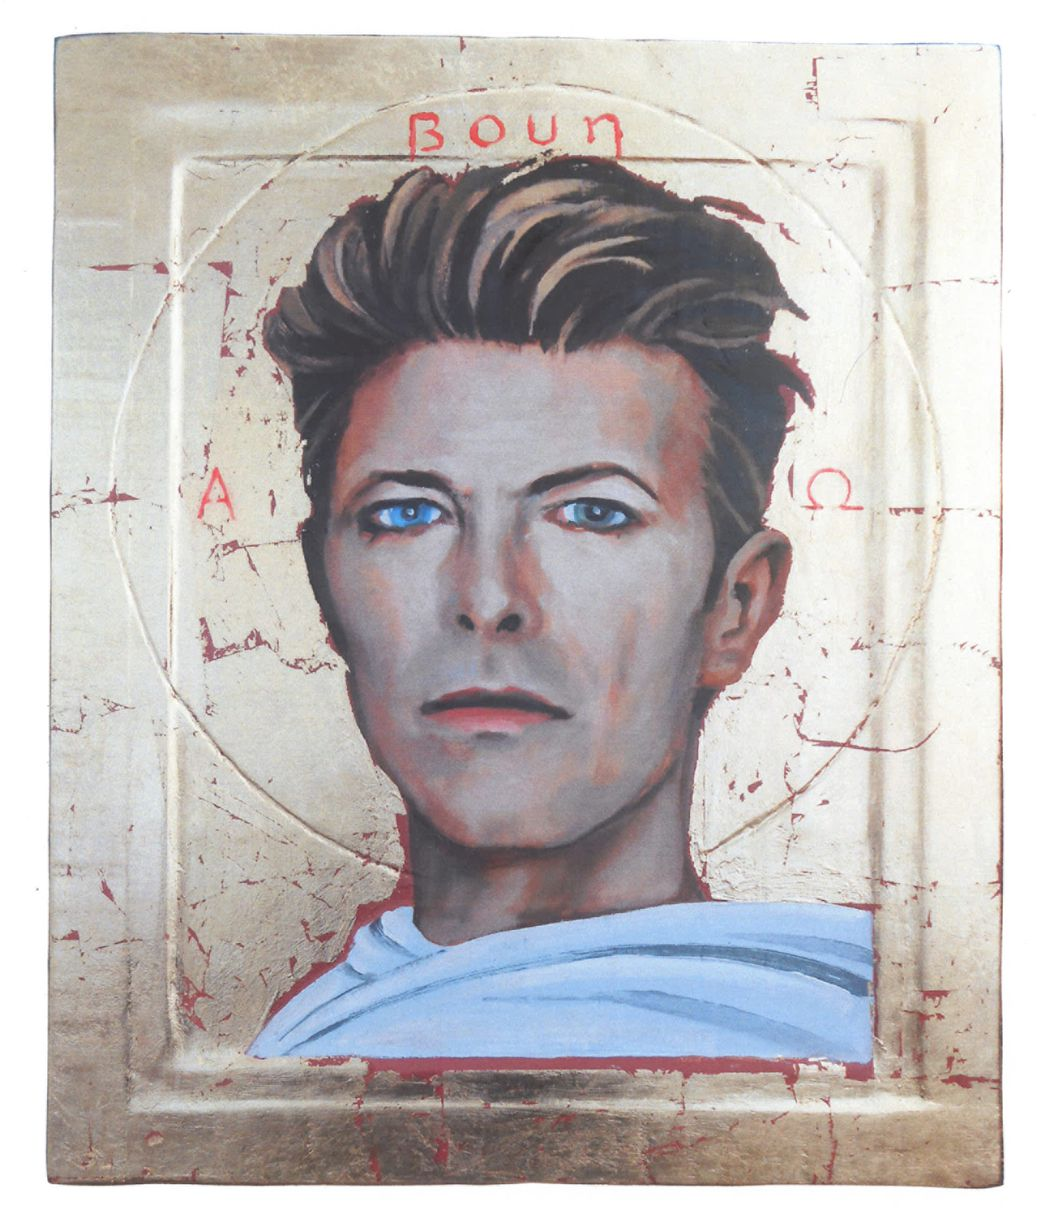 EDWARD BELL DAVID BOWIE